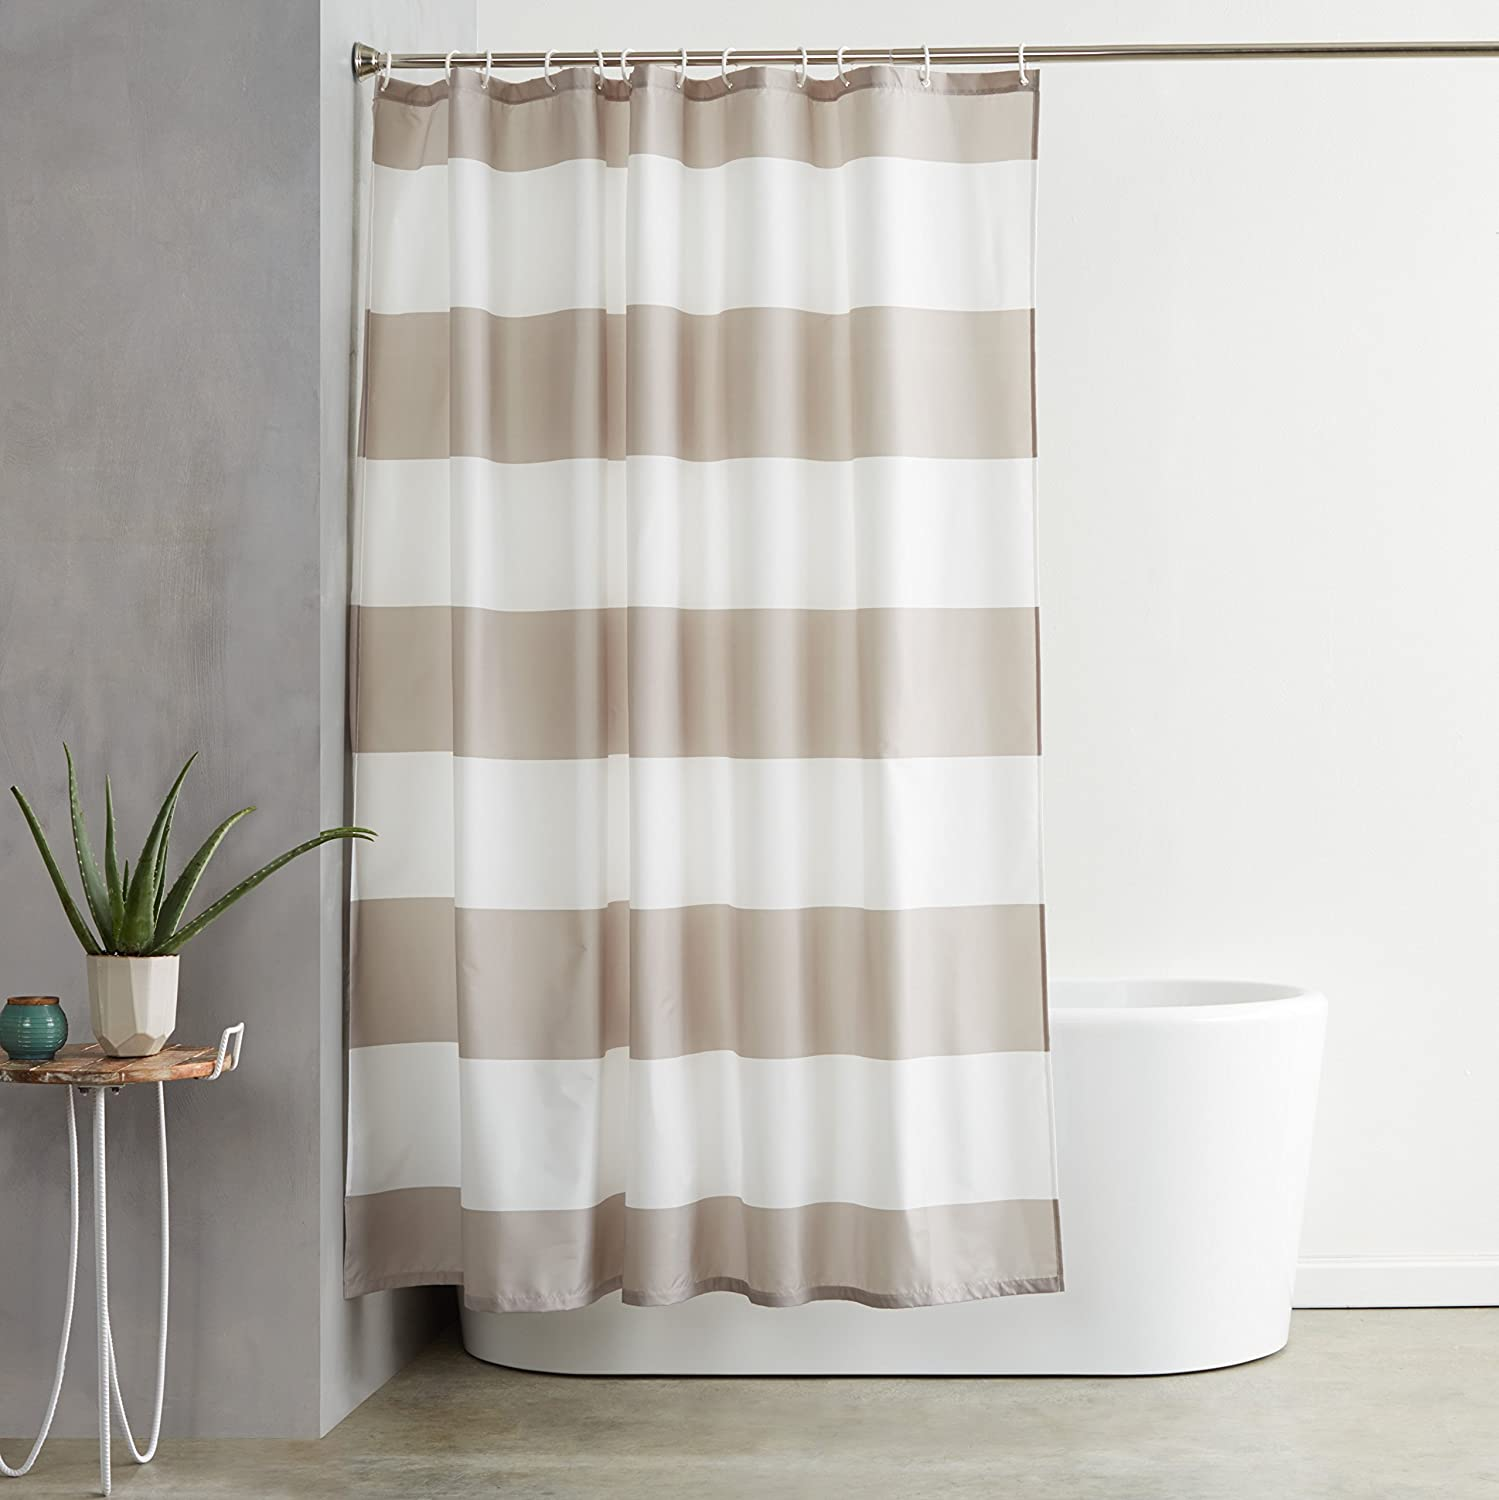 FOME 3D Effect Bathroom Curtain Water Cube Mold & Mildew